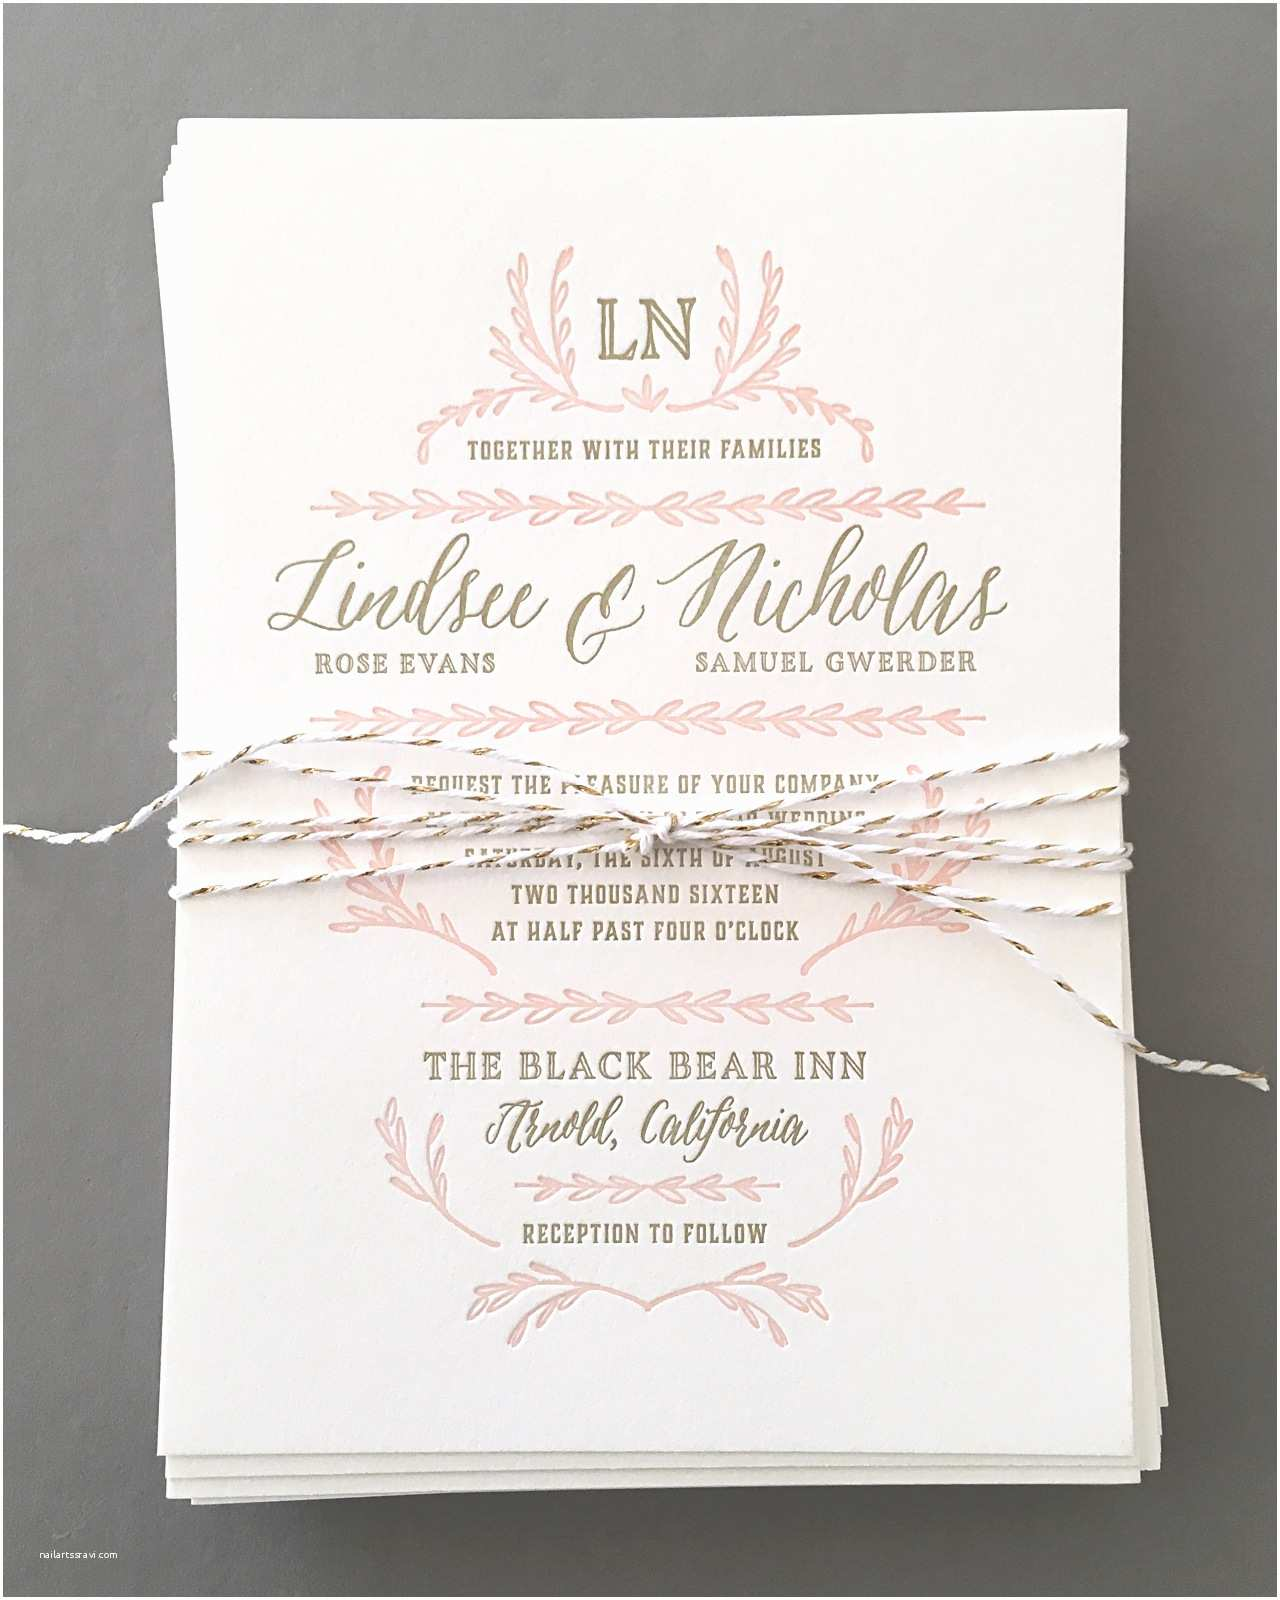 Blush Wedding Invitations Elegant Blush and Gold Letterpress Wedding Invitations